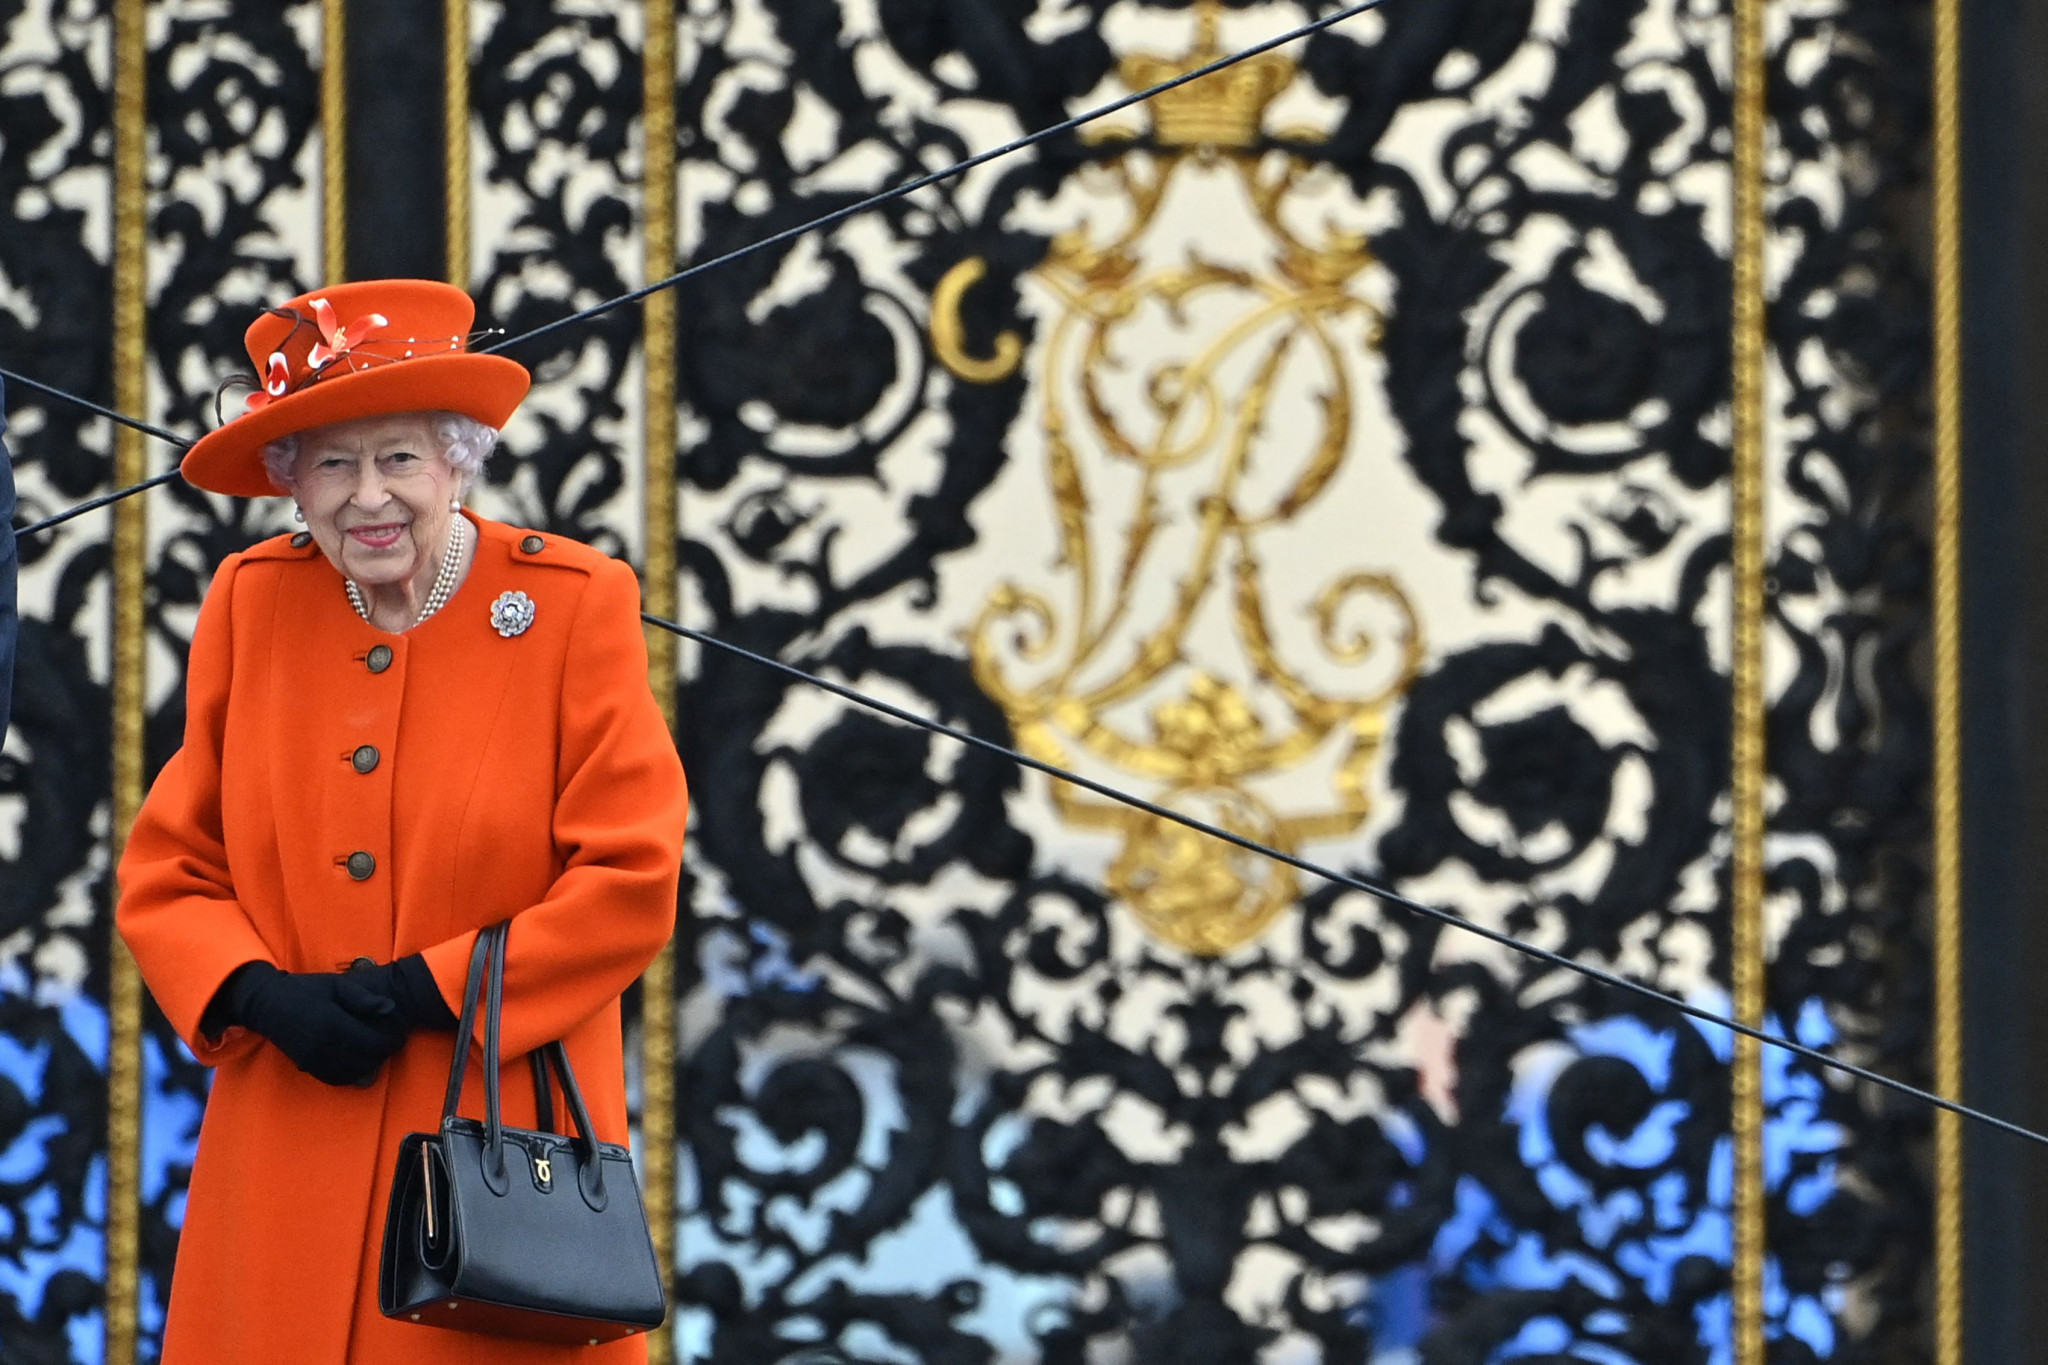 Queen Elizabeth II sent the Baton on its way, where it will travel to every nation and territory in the Commonwealth, spanning 90,000 miles and 269 days, before returning to England for the commencement of Birmingham 2022 on July 28 ©Getty Images